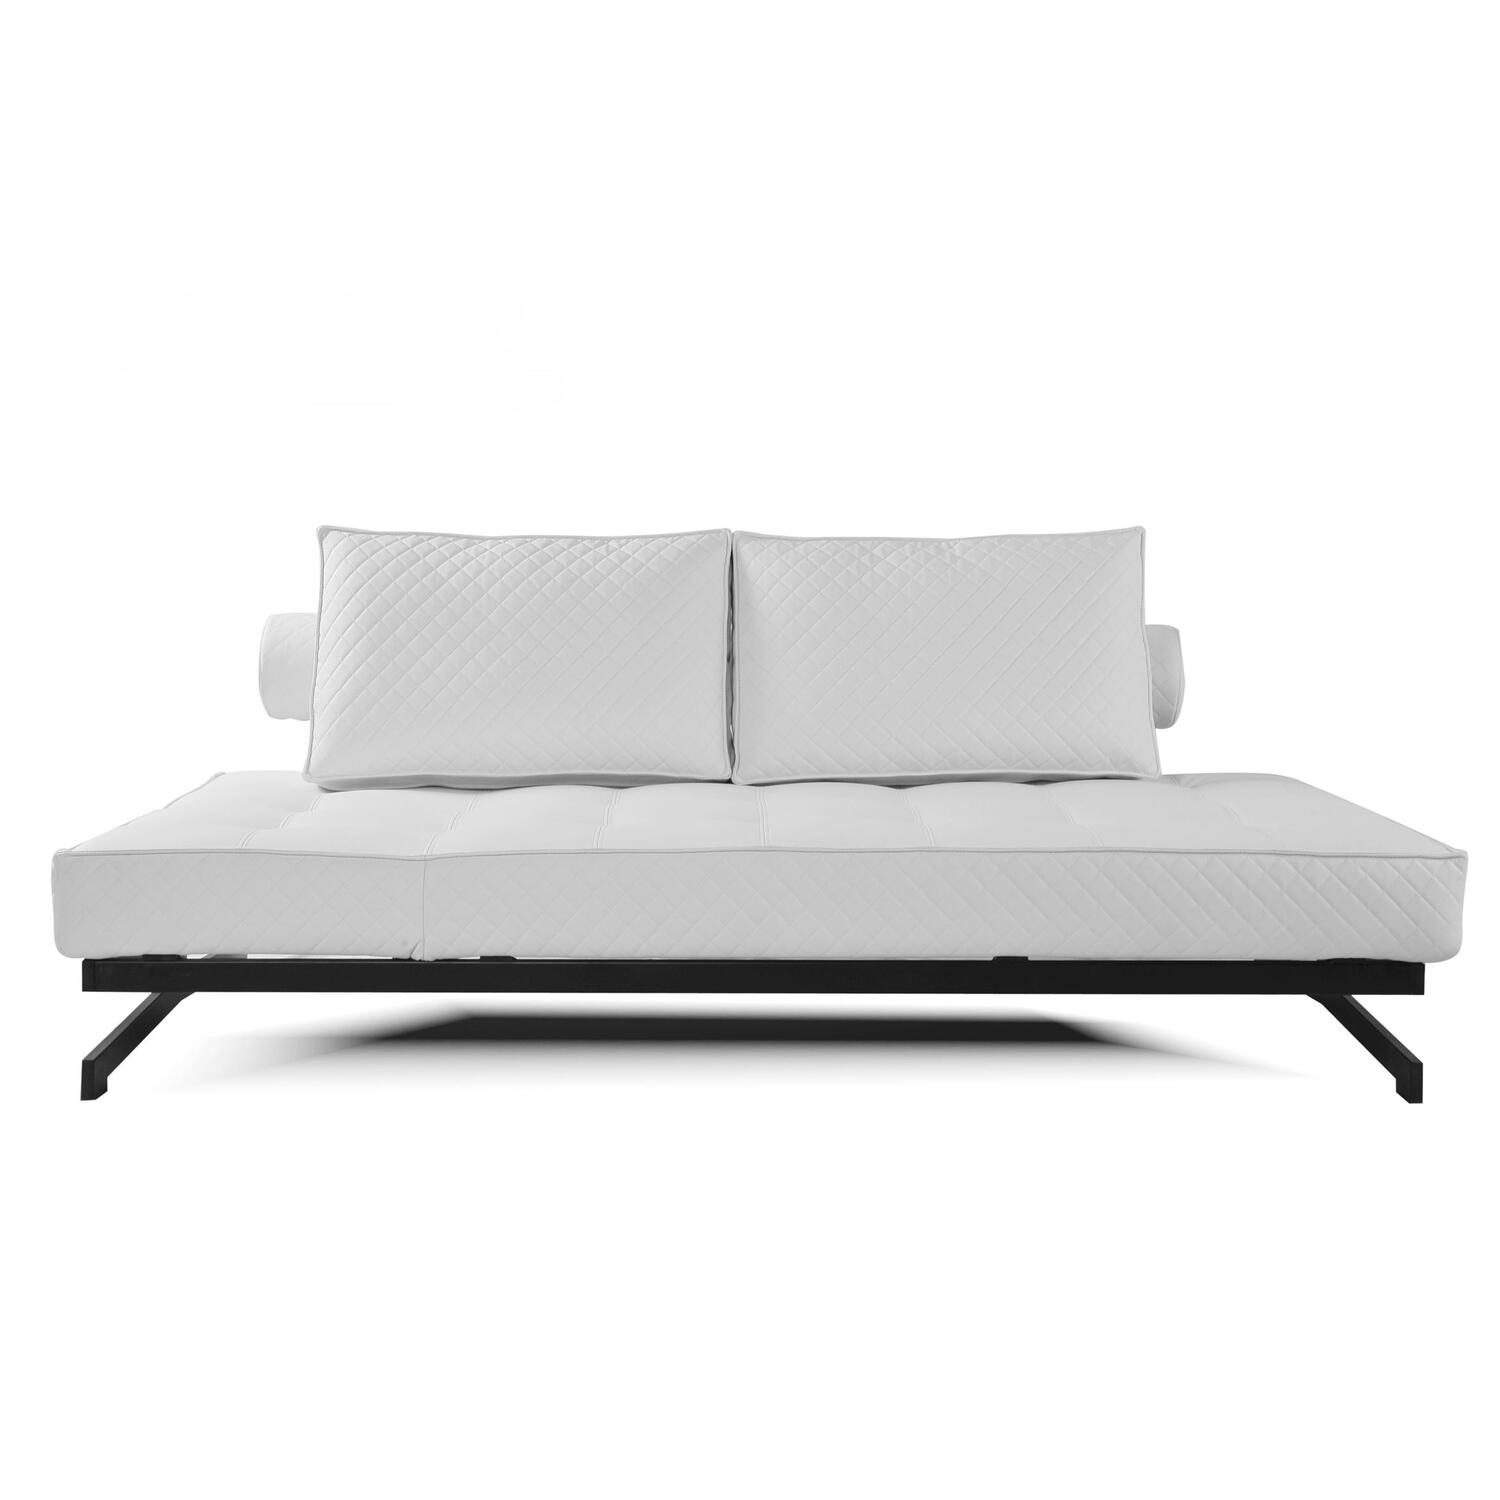 european sofas sofa next to bed abbyson living convertible euro lounger by oj